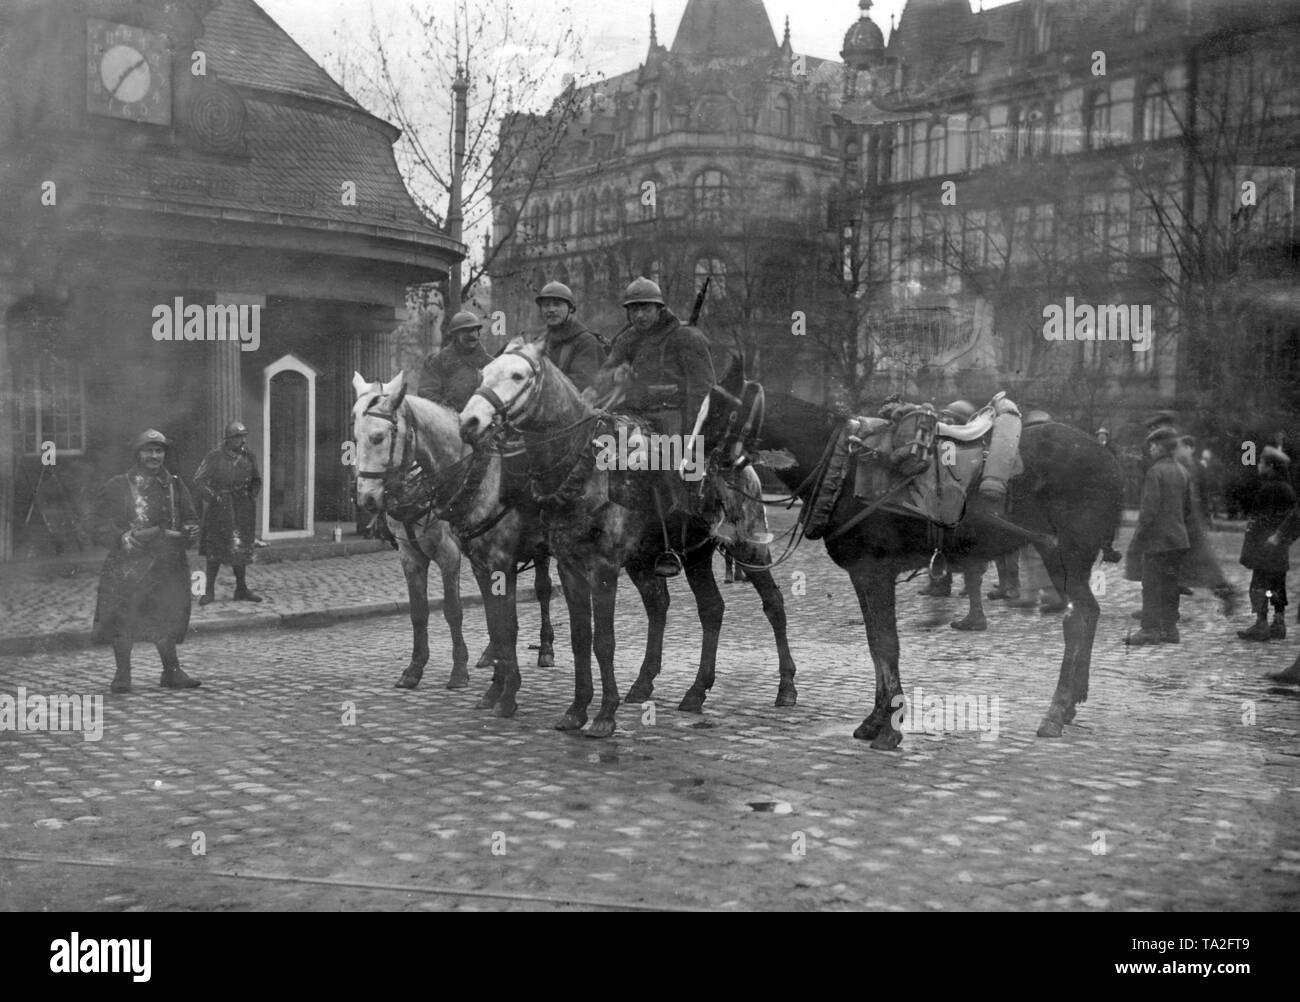 According to the Treaty of Versailles, French troops occupied the Rhineland. French cavalrymen on the streets of Mainz. - Stock Image